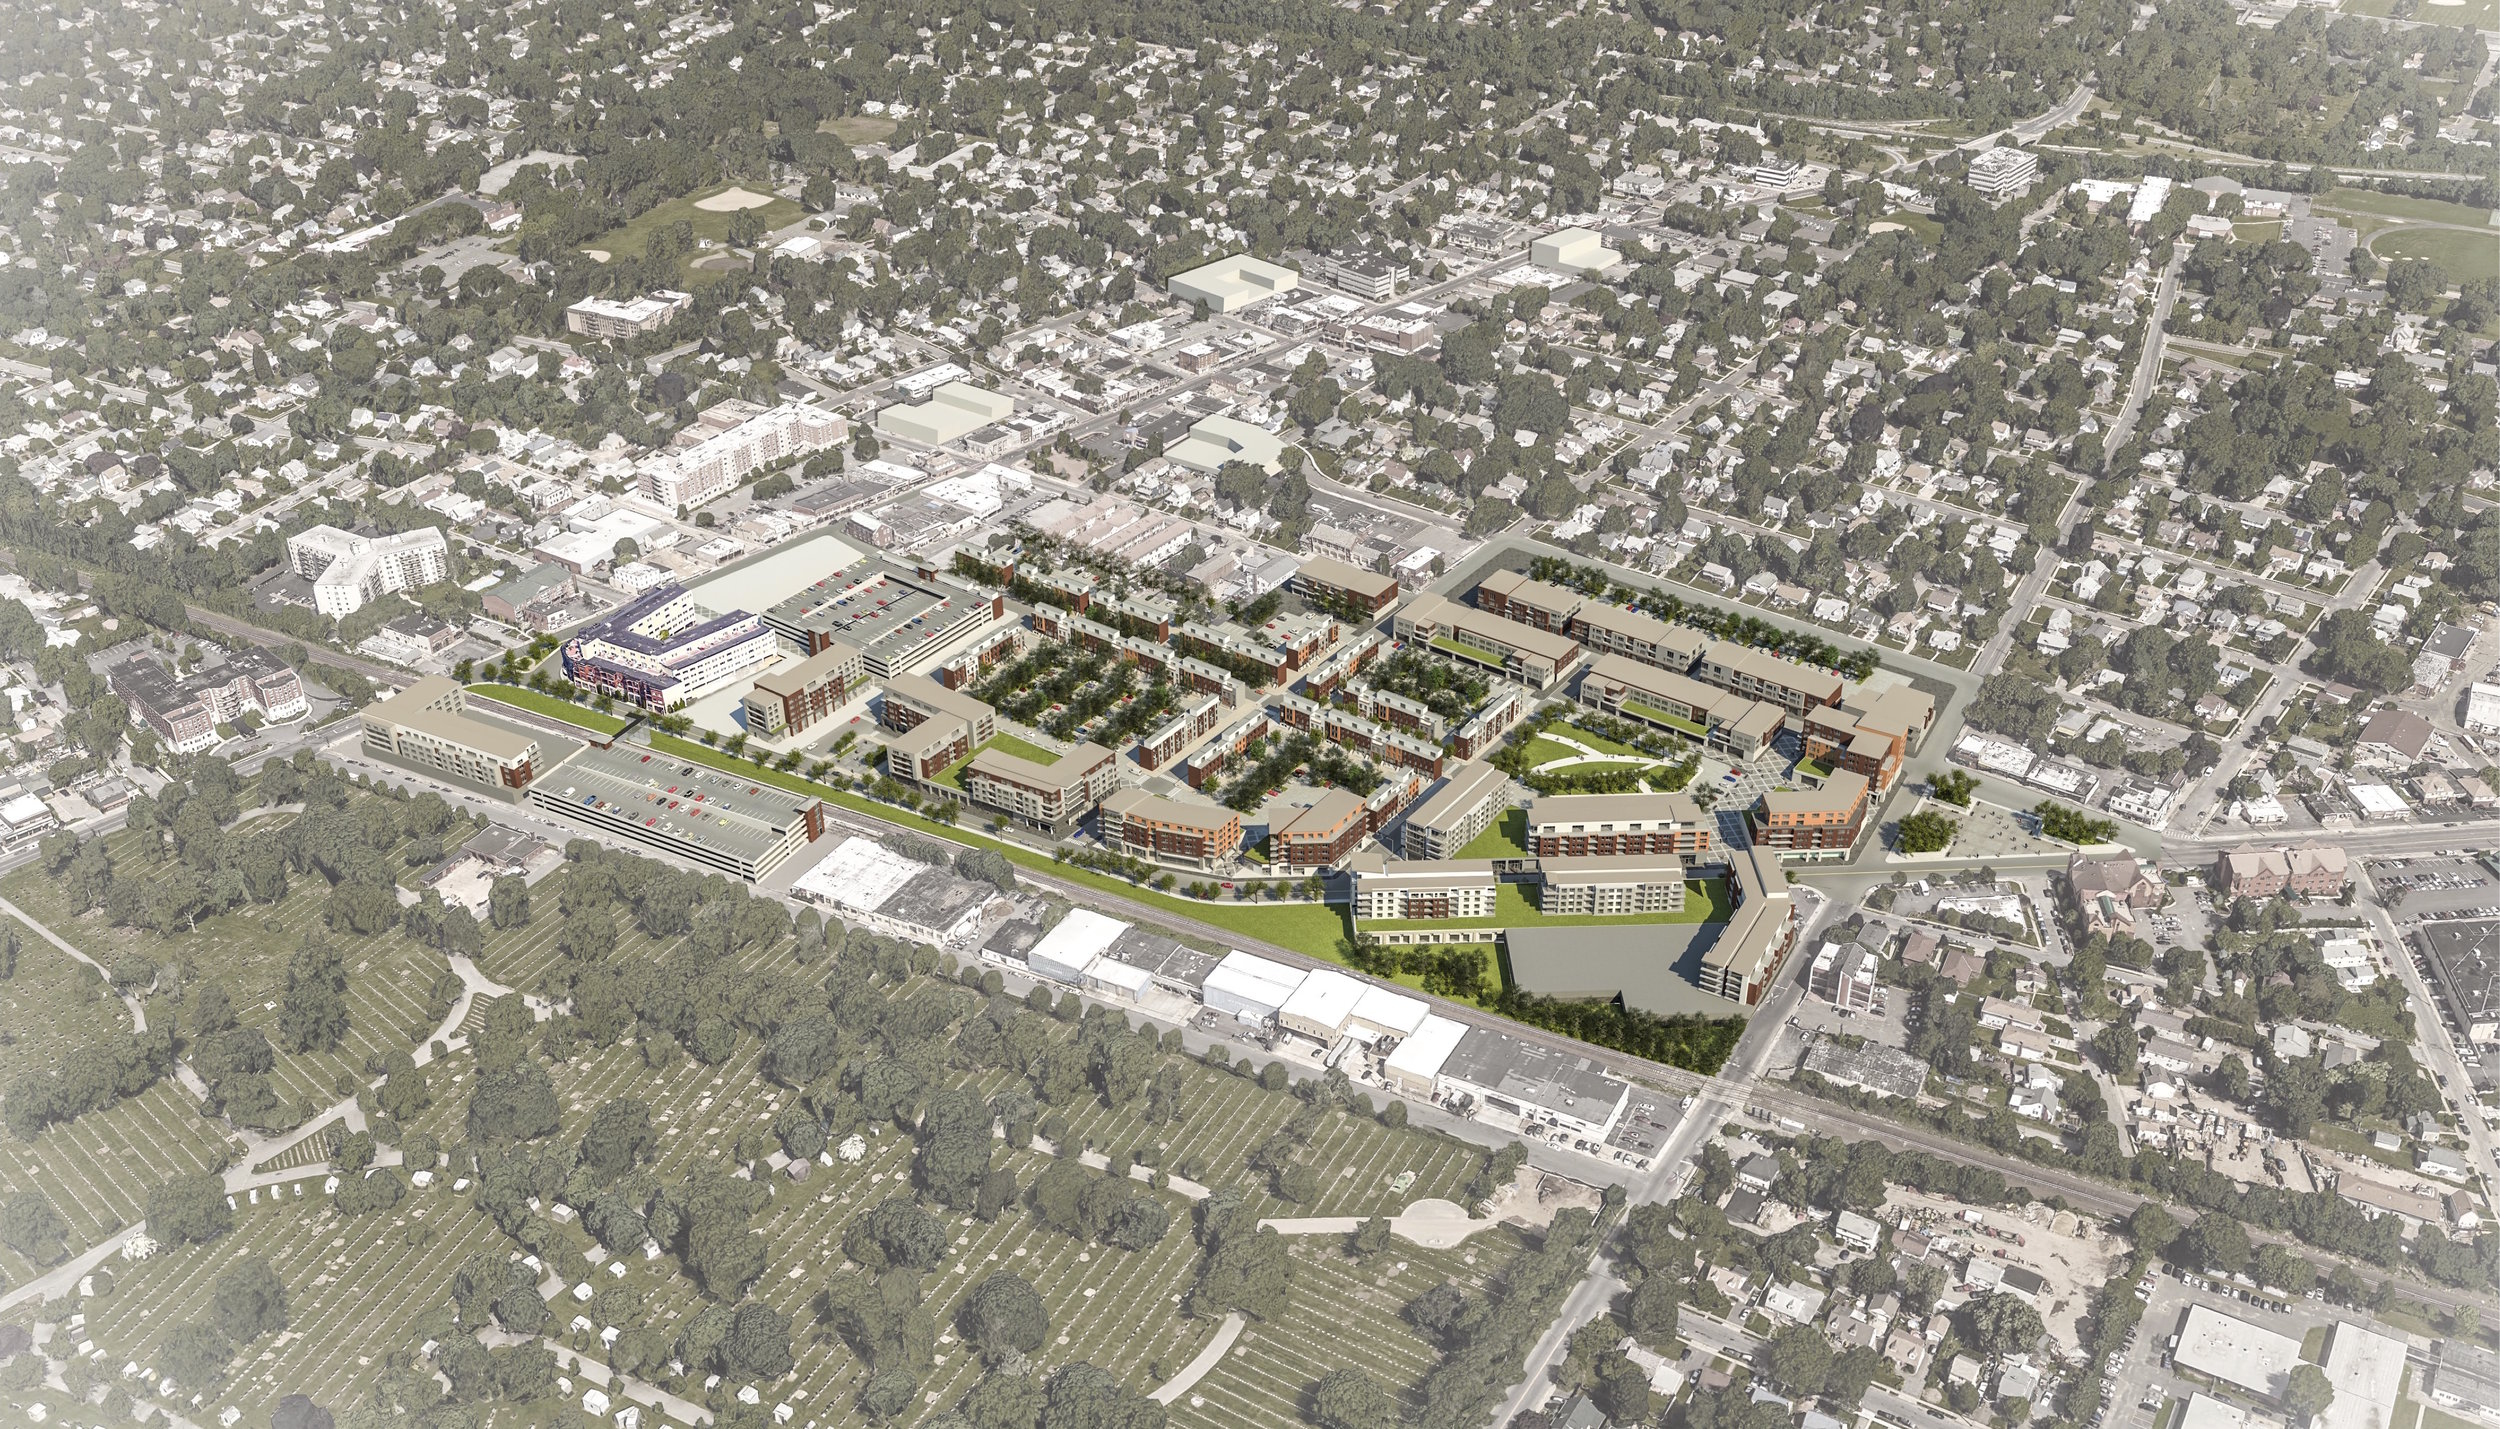 Rendering of an Example of Downtown Westbury Following the Rezoning (Rendering Created by FXFOWLE)